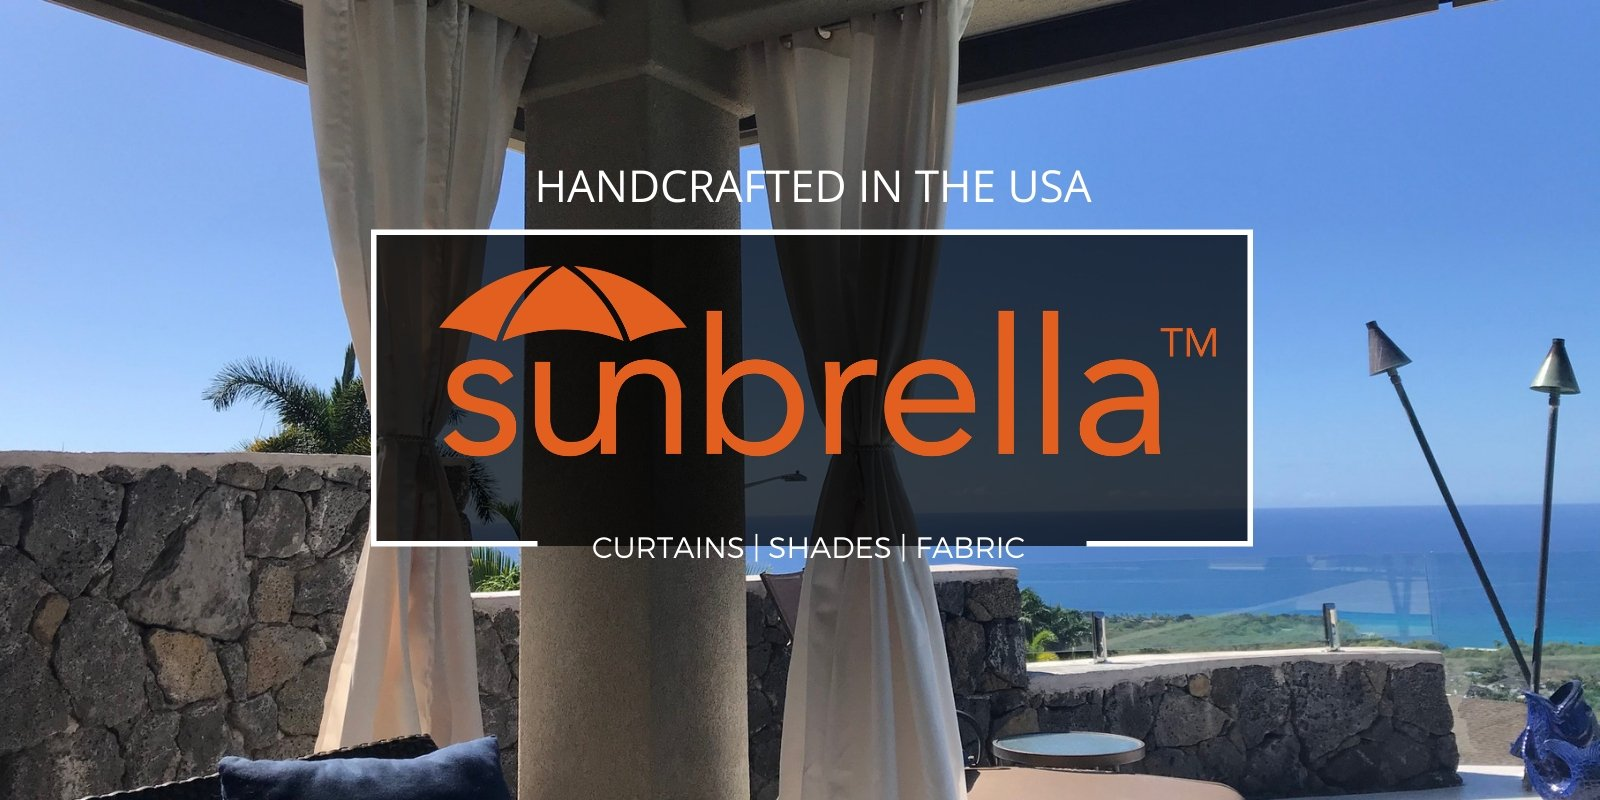 Sunbrella Outdoor Curtains - Handcrafted in the USA